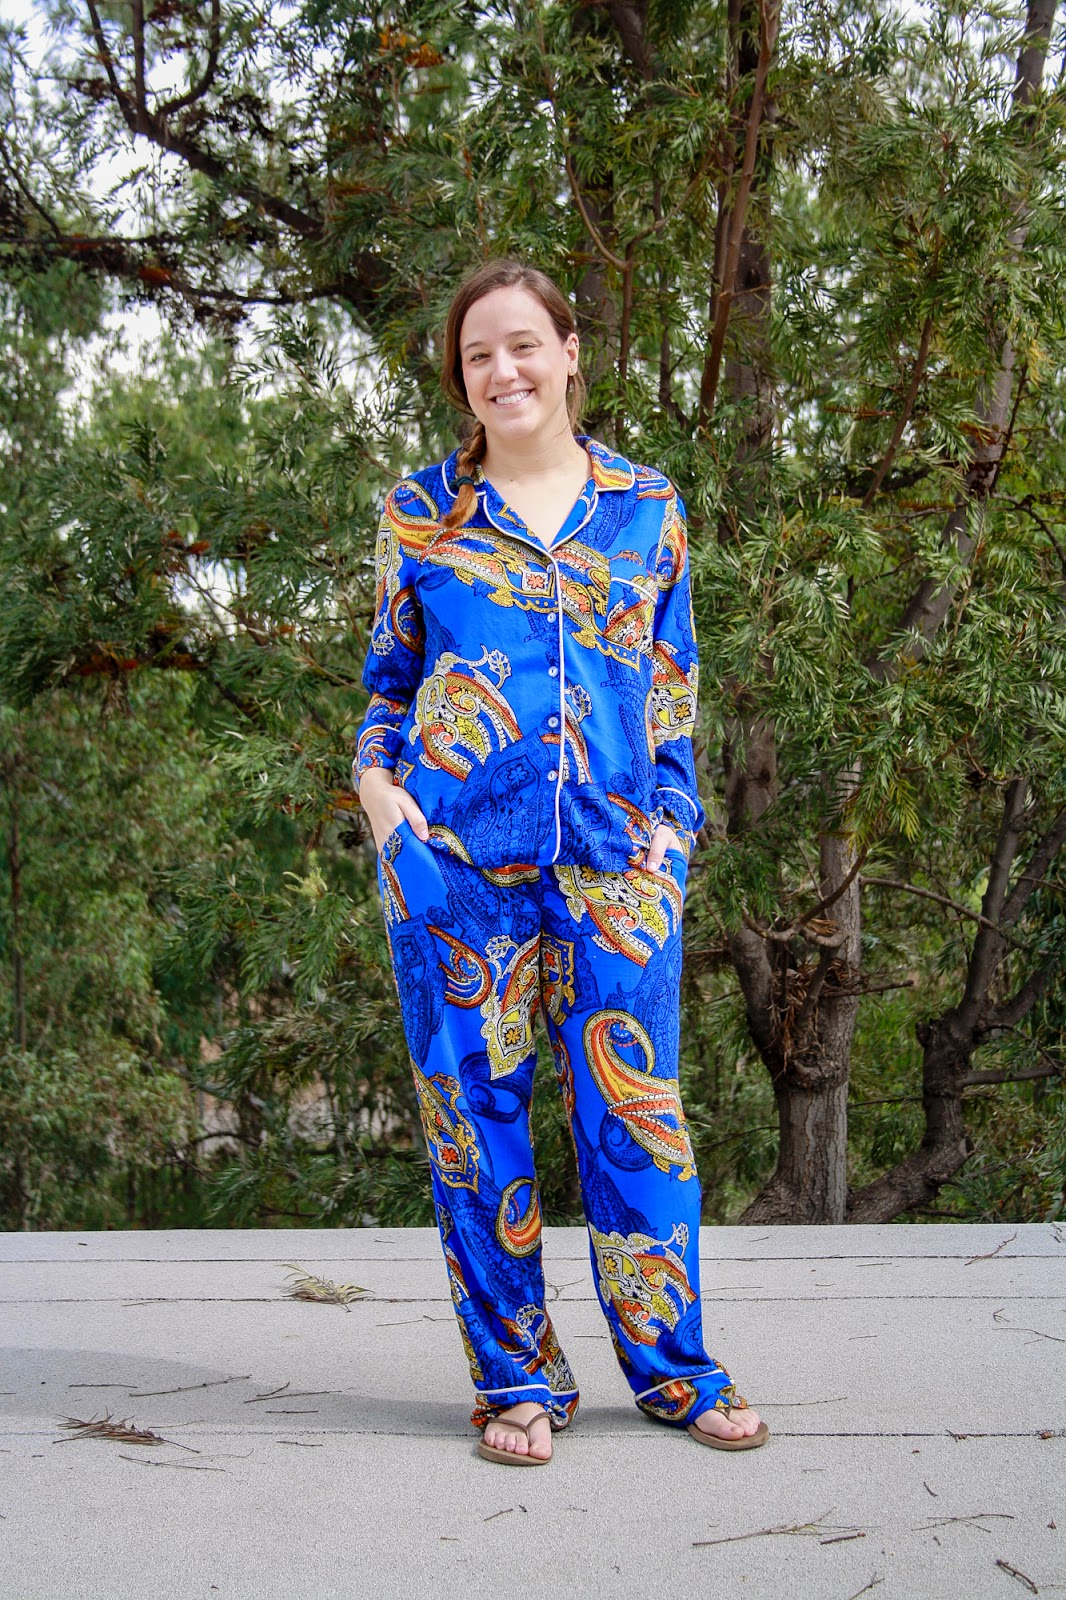 650104ceea912 On a trip to the garment district, I picked up 4 yards of this royal  blue/orange/white/black paisley print - and I was lucky enough to snag some  silk for my ...